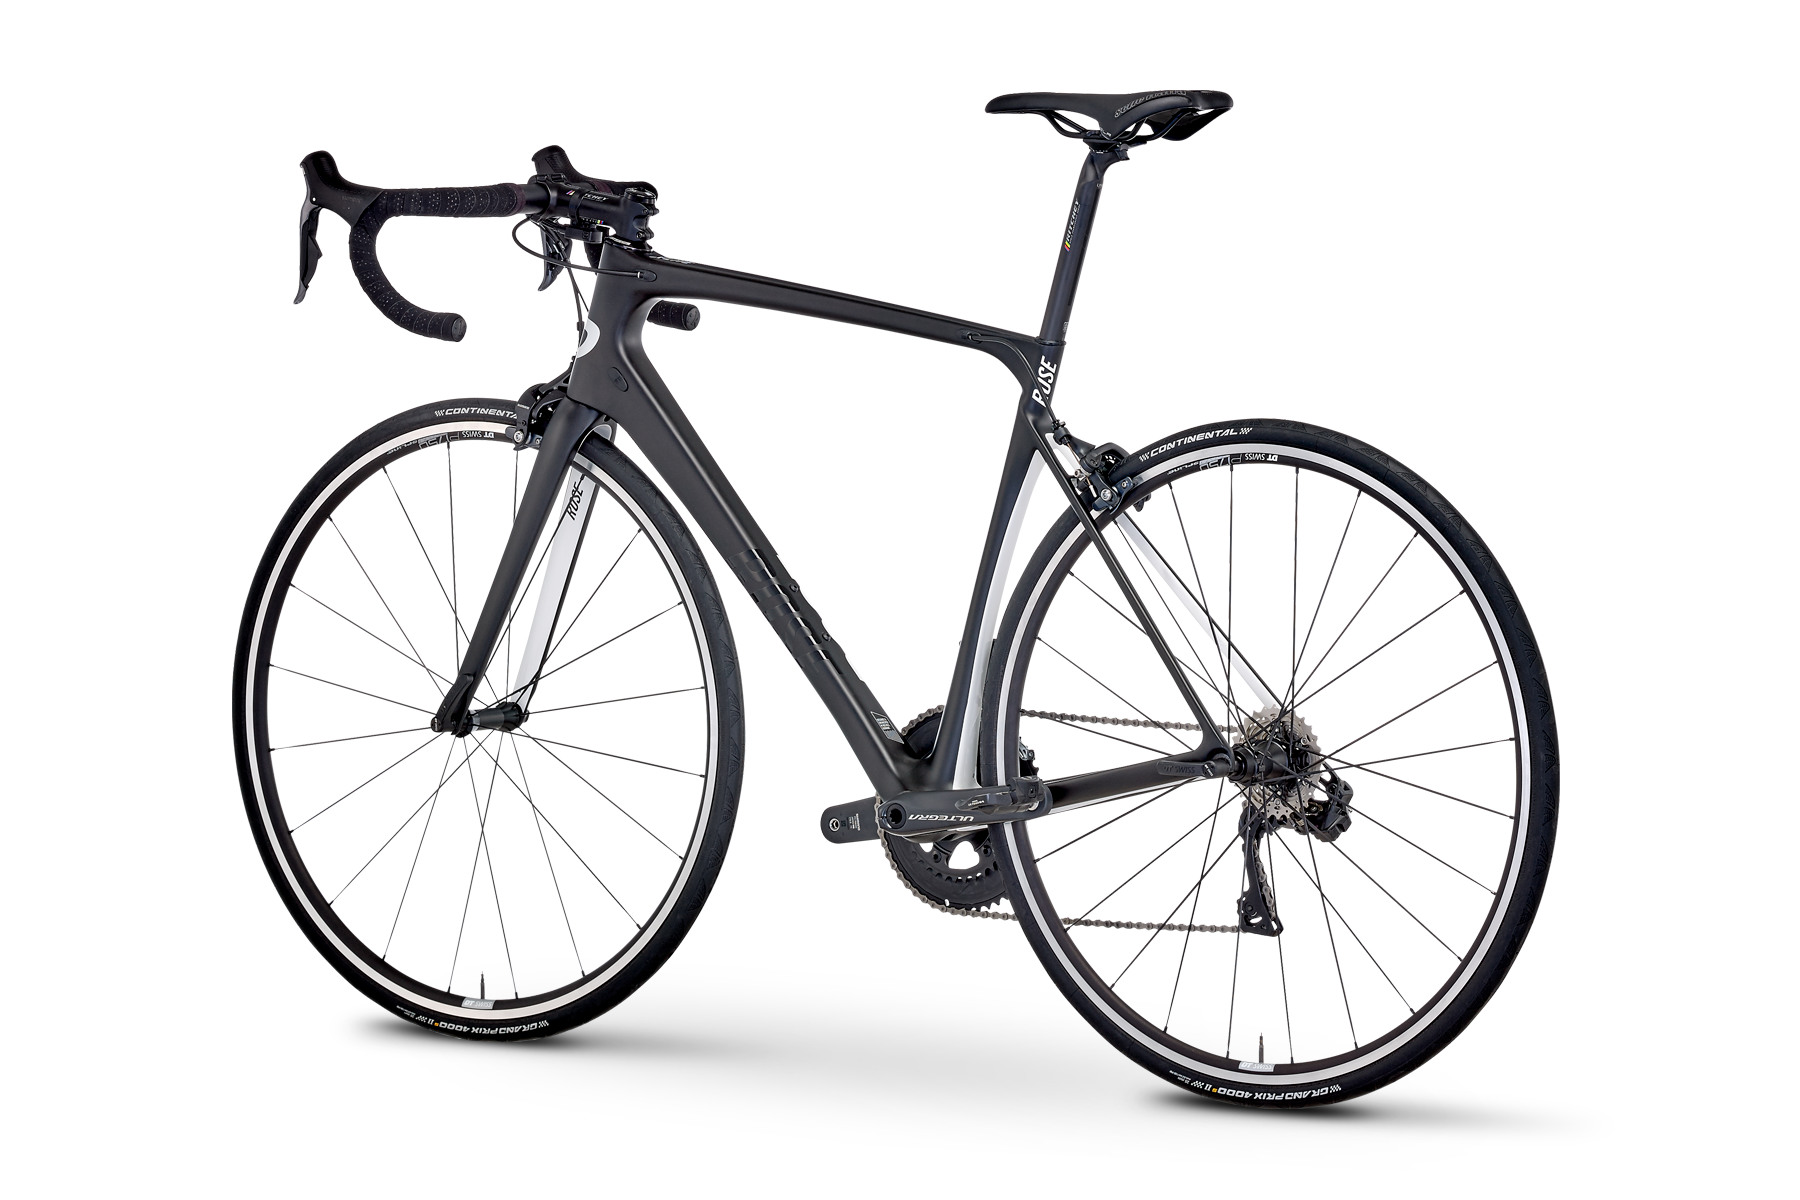 The ROSE X-LITE FOUR Ultegra Di2 | Your dream bike - exclusively available at ROSE Bikes